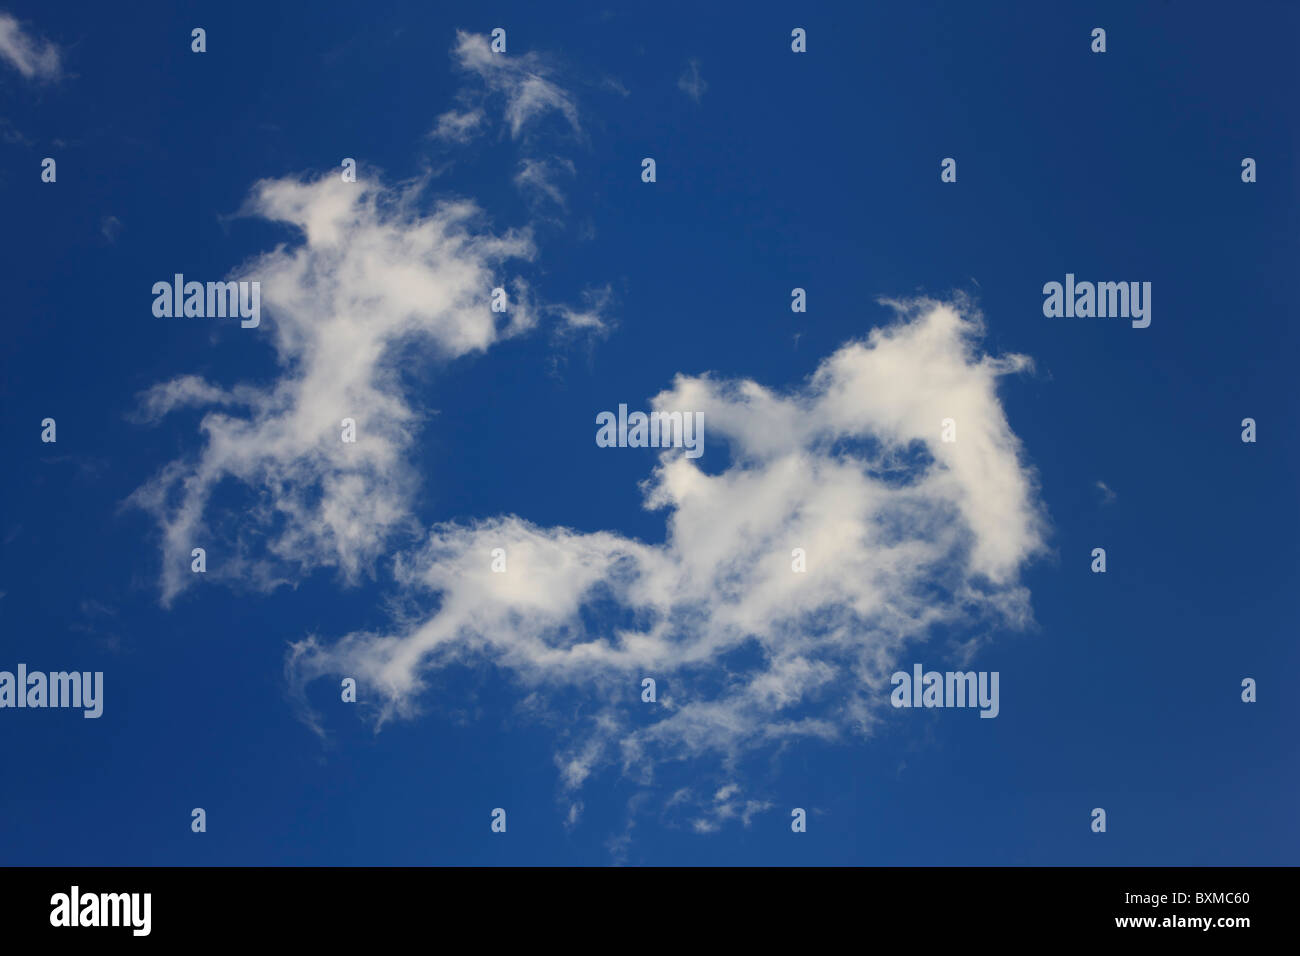 Some wispy clouds that are dissipating overhead. Stock Photo